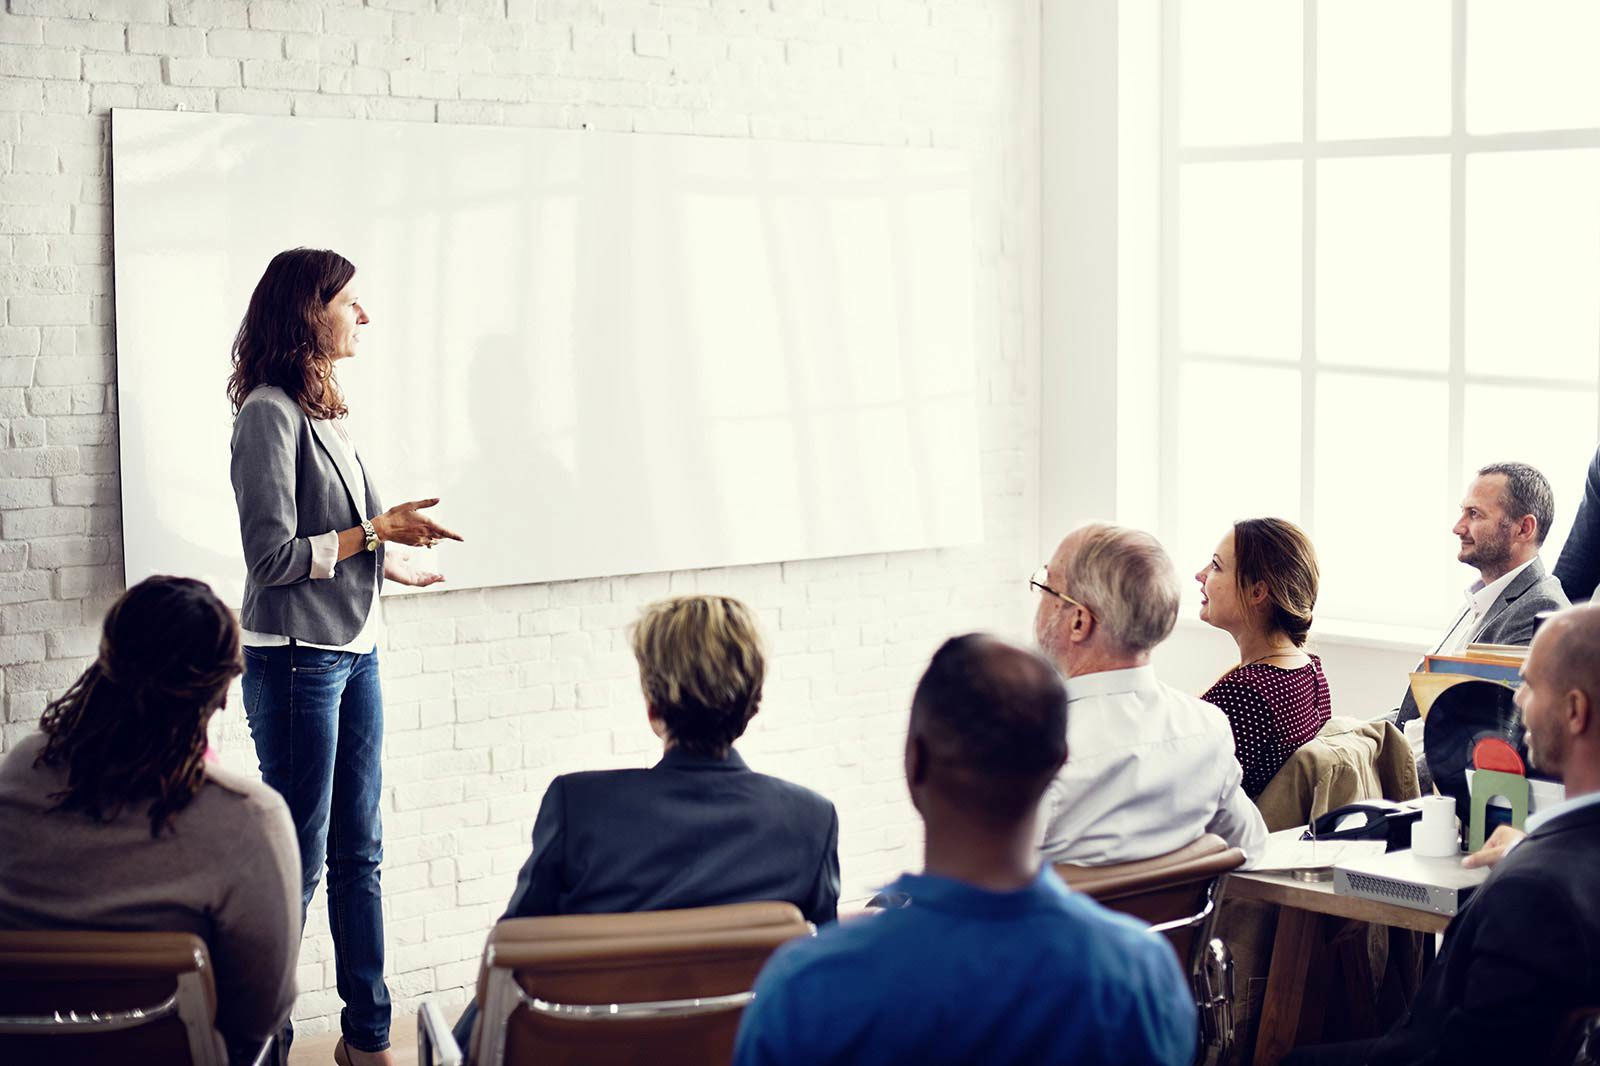 Woman standing in front of whiteboard presenting to group in chairs.